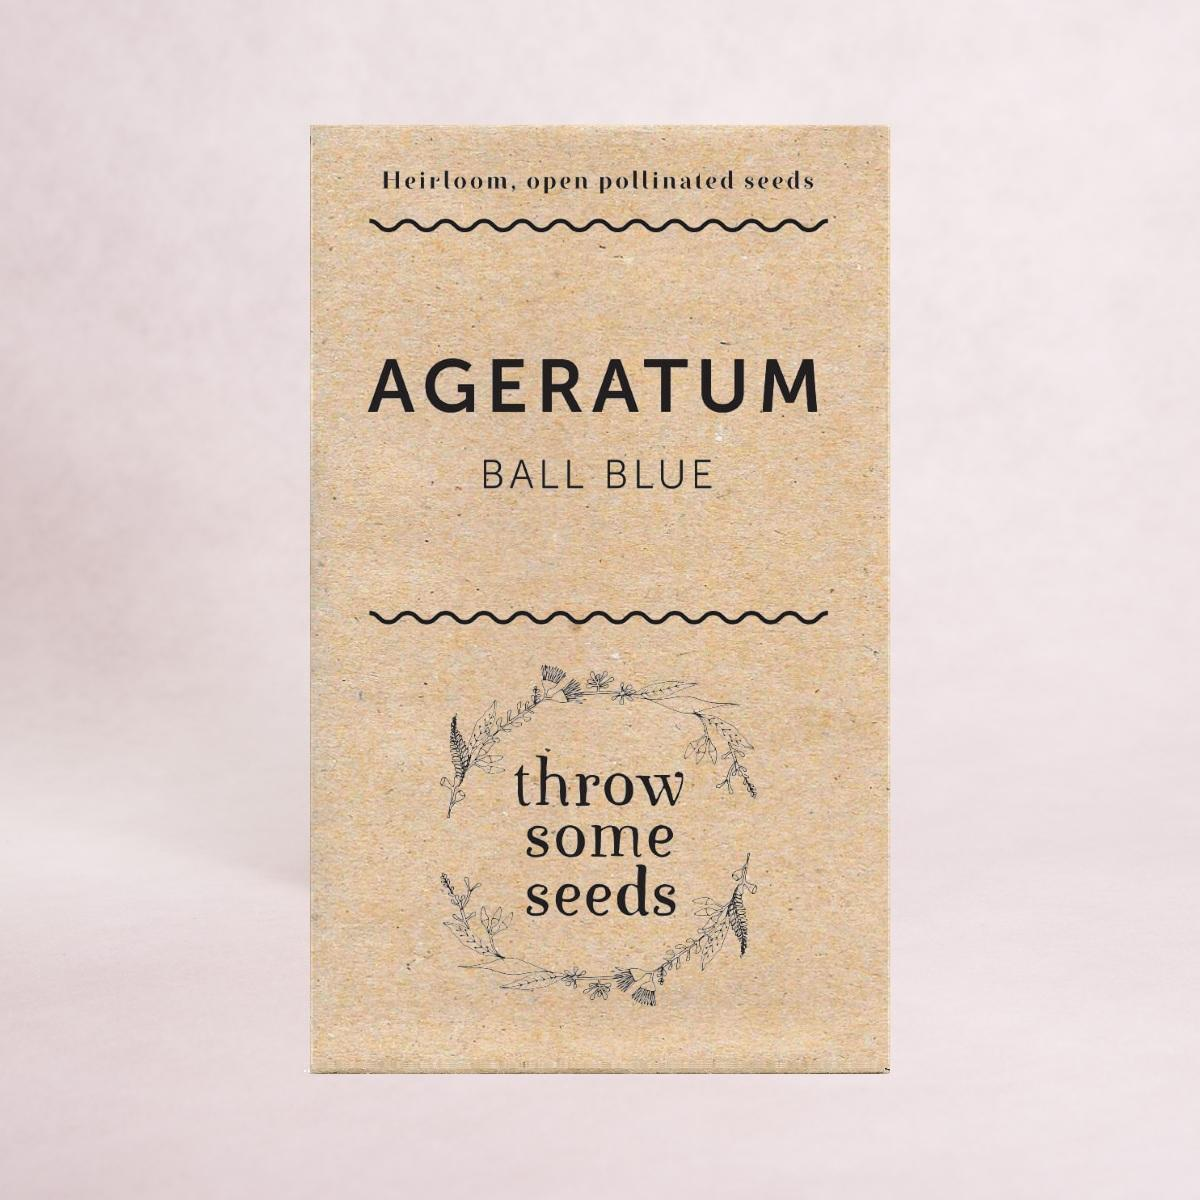 Ageratum (Blue Ball) Seeds - Seeds - Throw Some Seeds - Australian gardening gifts and eco products online!